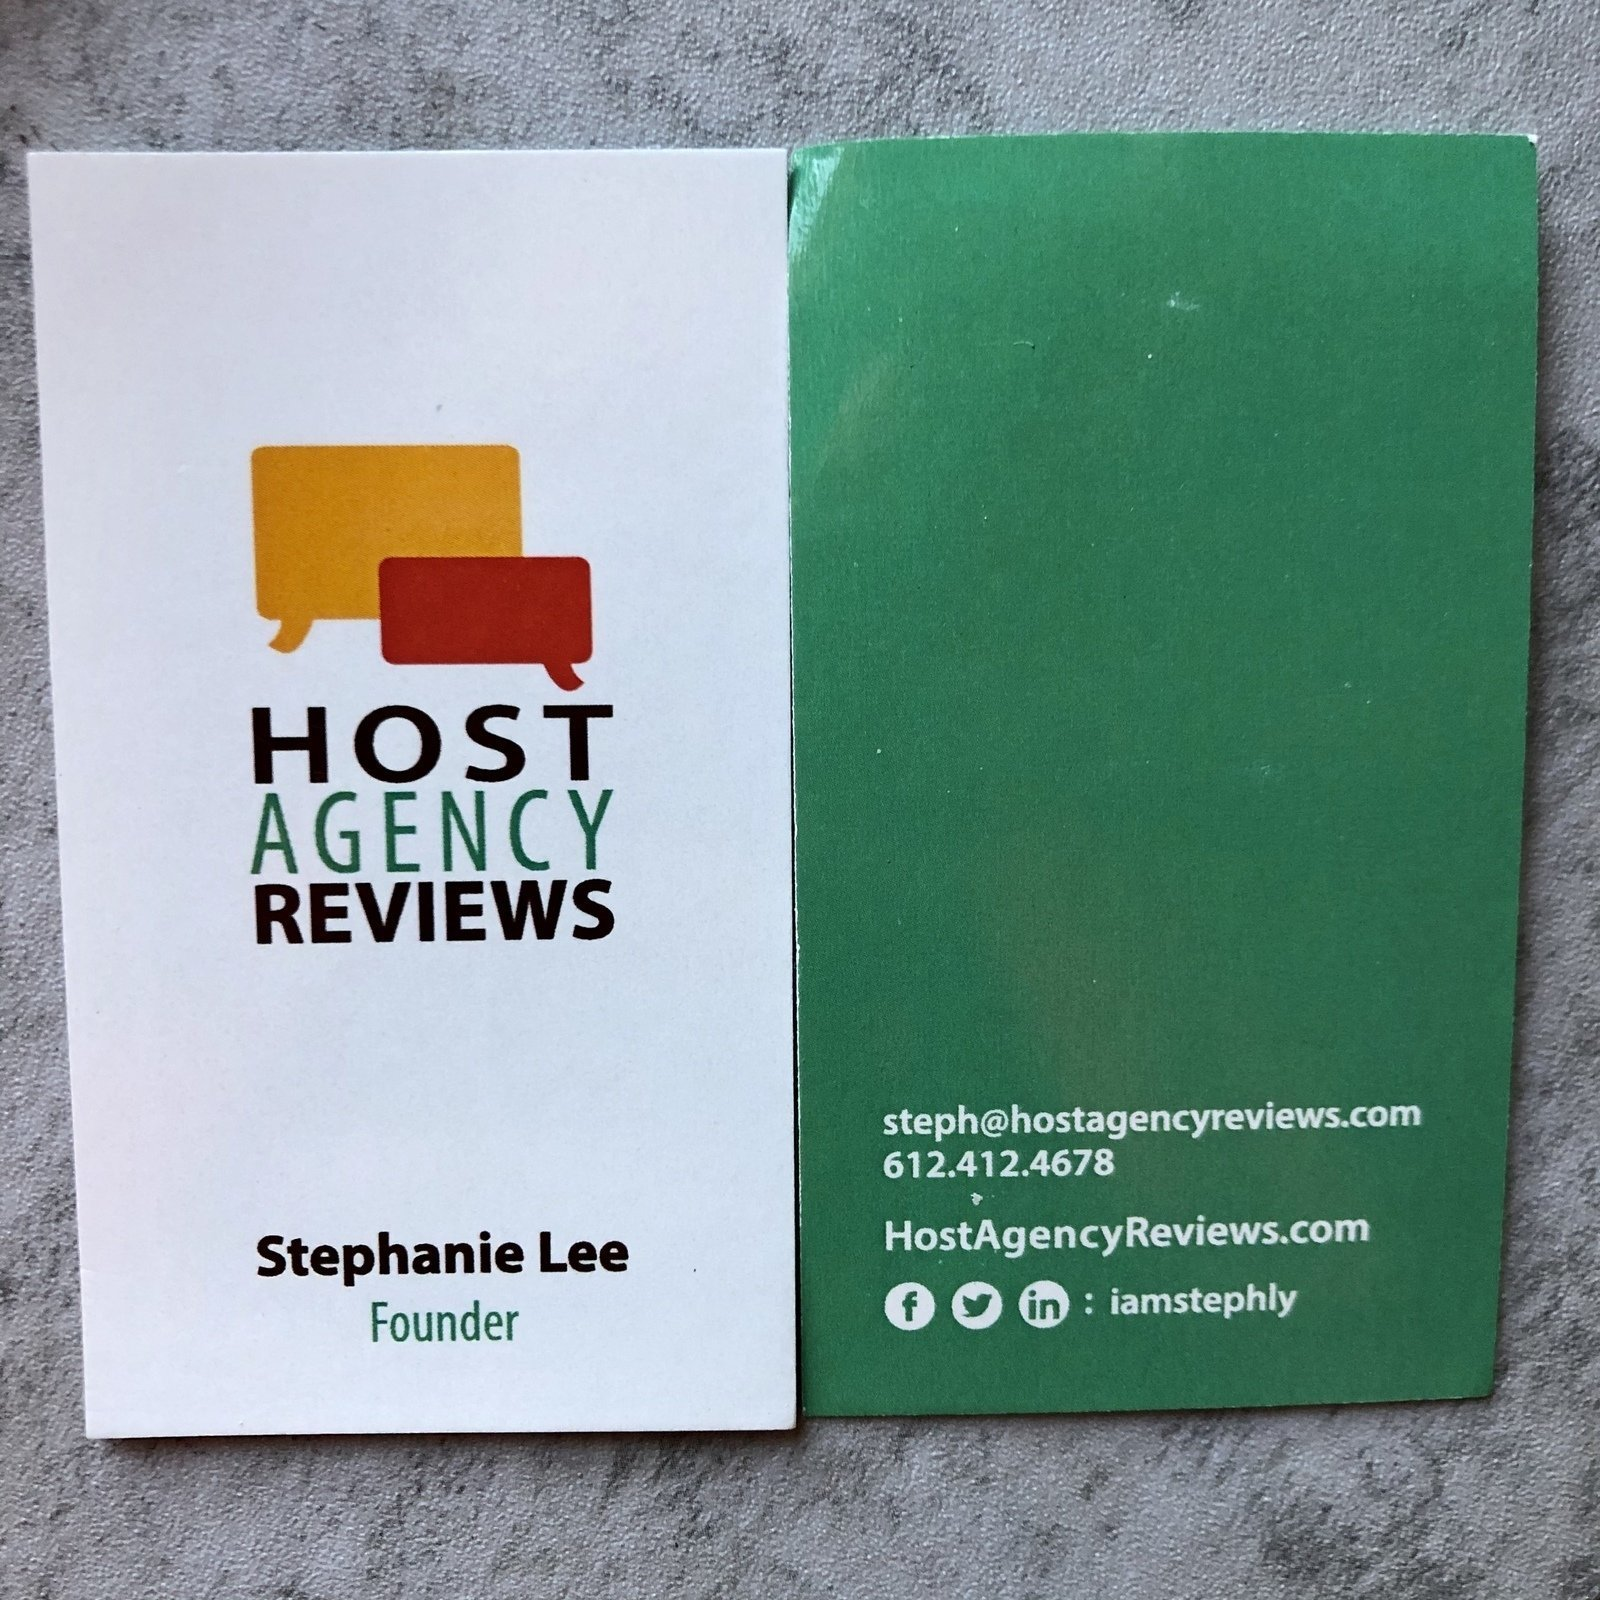 Host Agency Reviews business cards